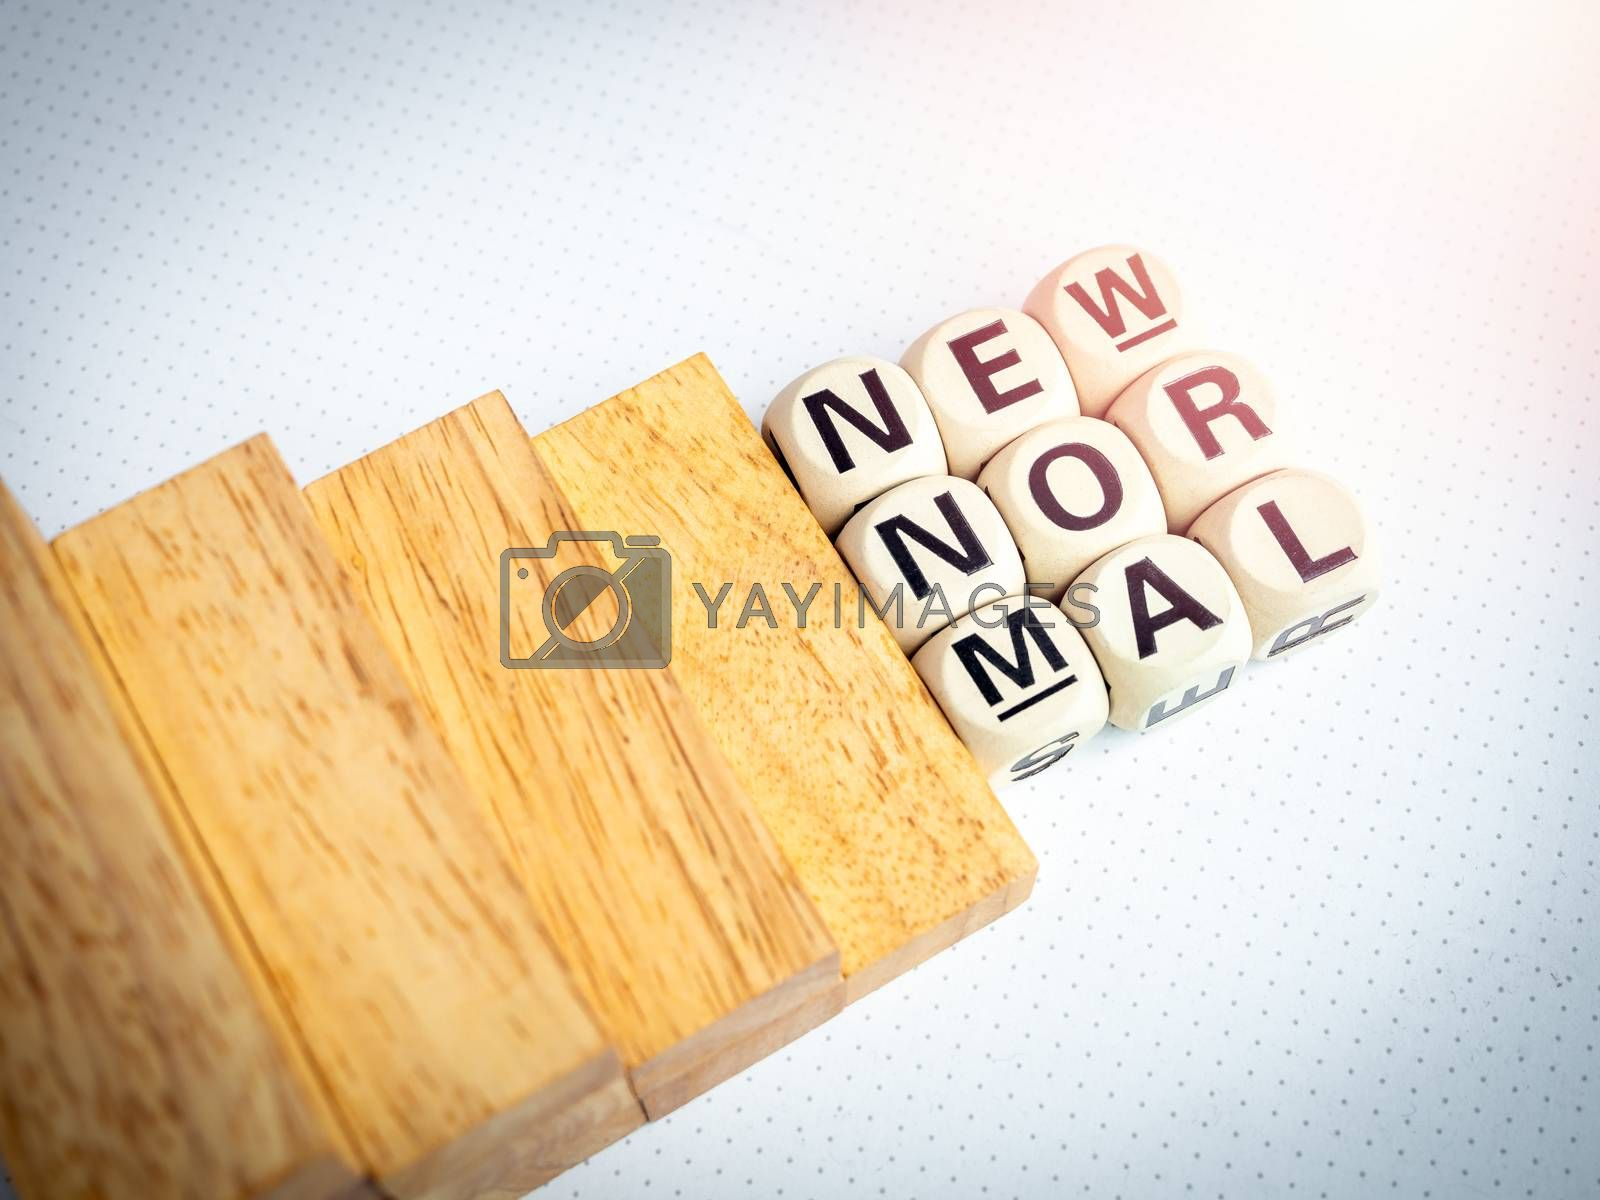 Stairs down to New Normal, words on wooden alphabet cube on white background, top view. New normal after covid-19 pandemic concept.